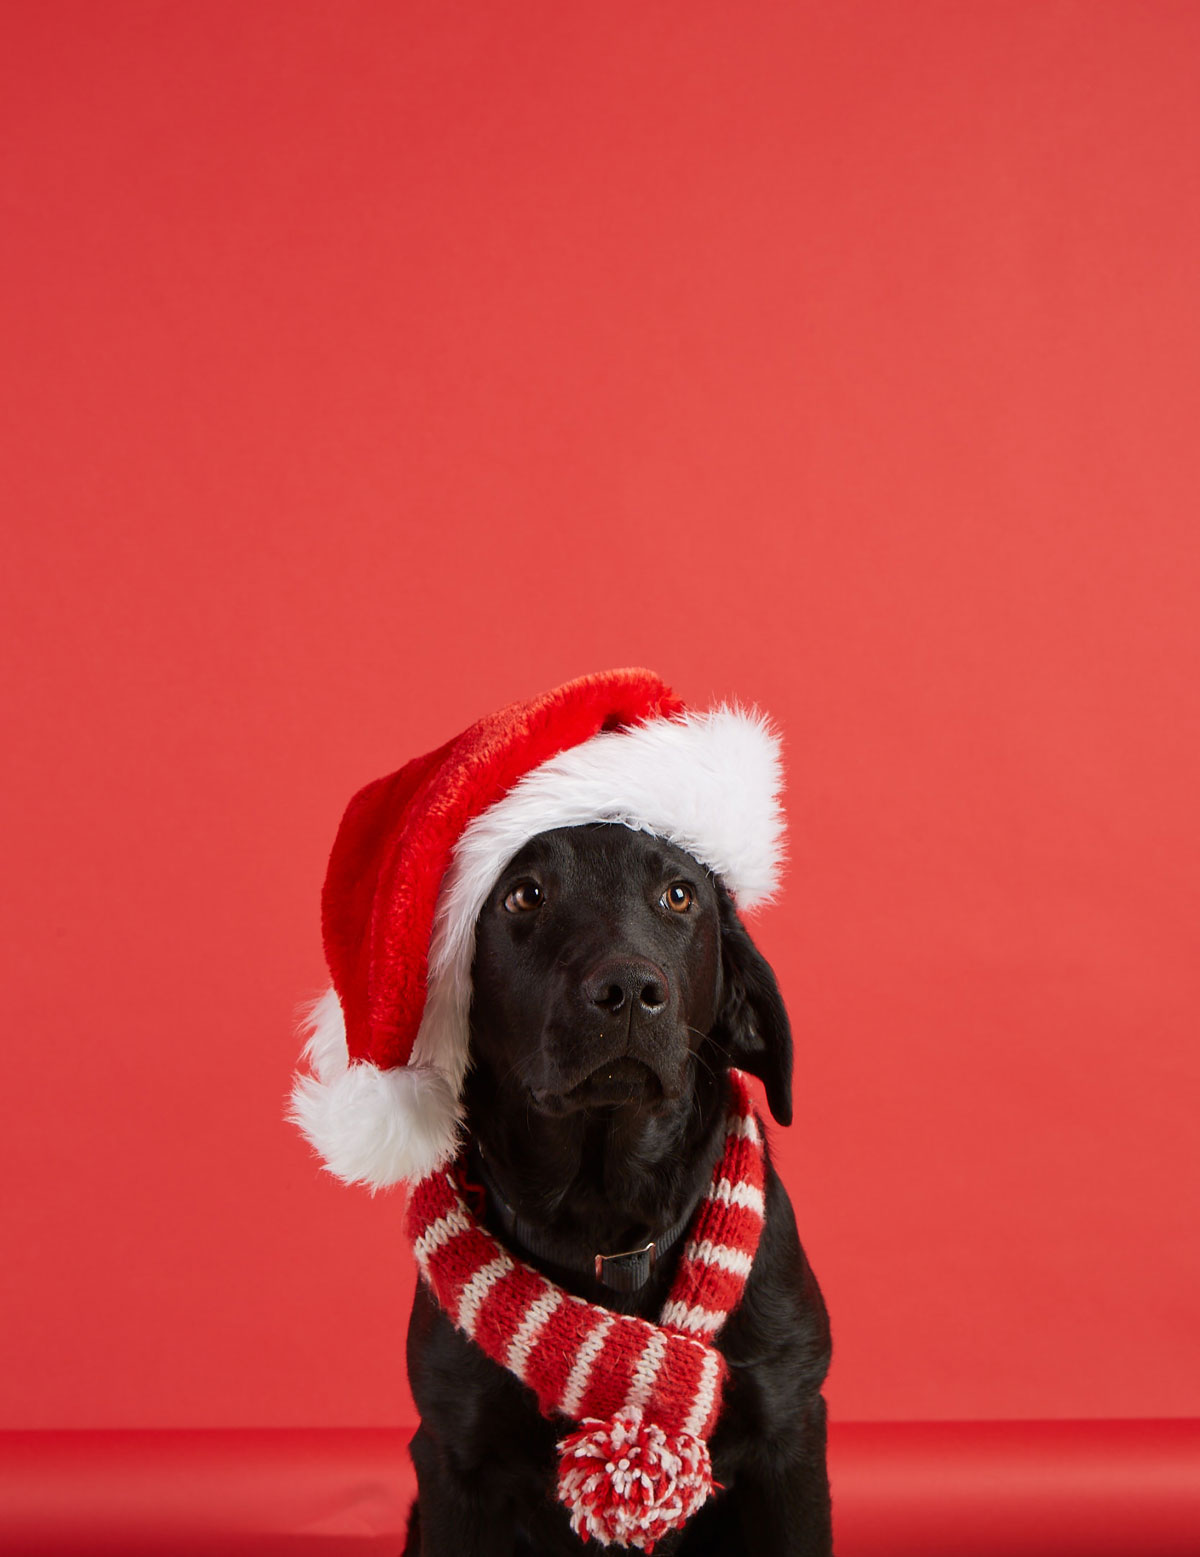 black lab dog in santa hat and red scarf